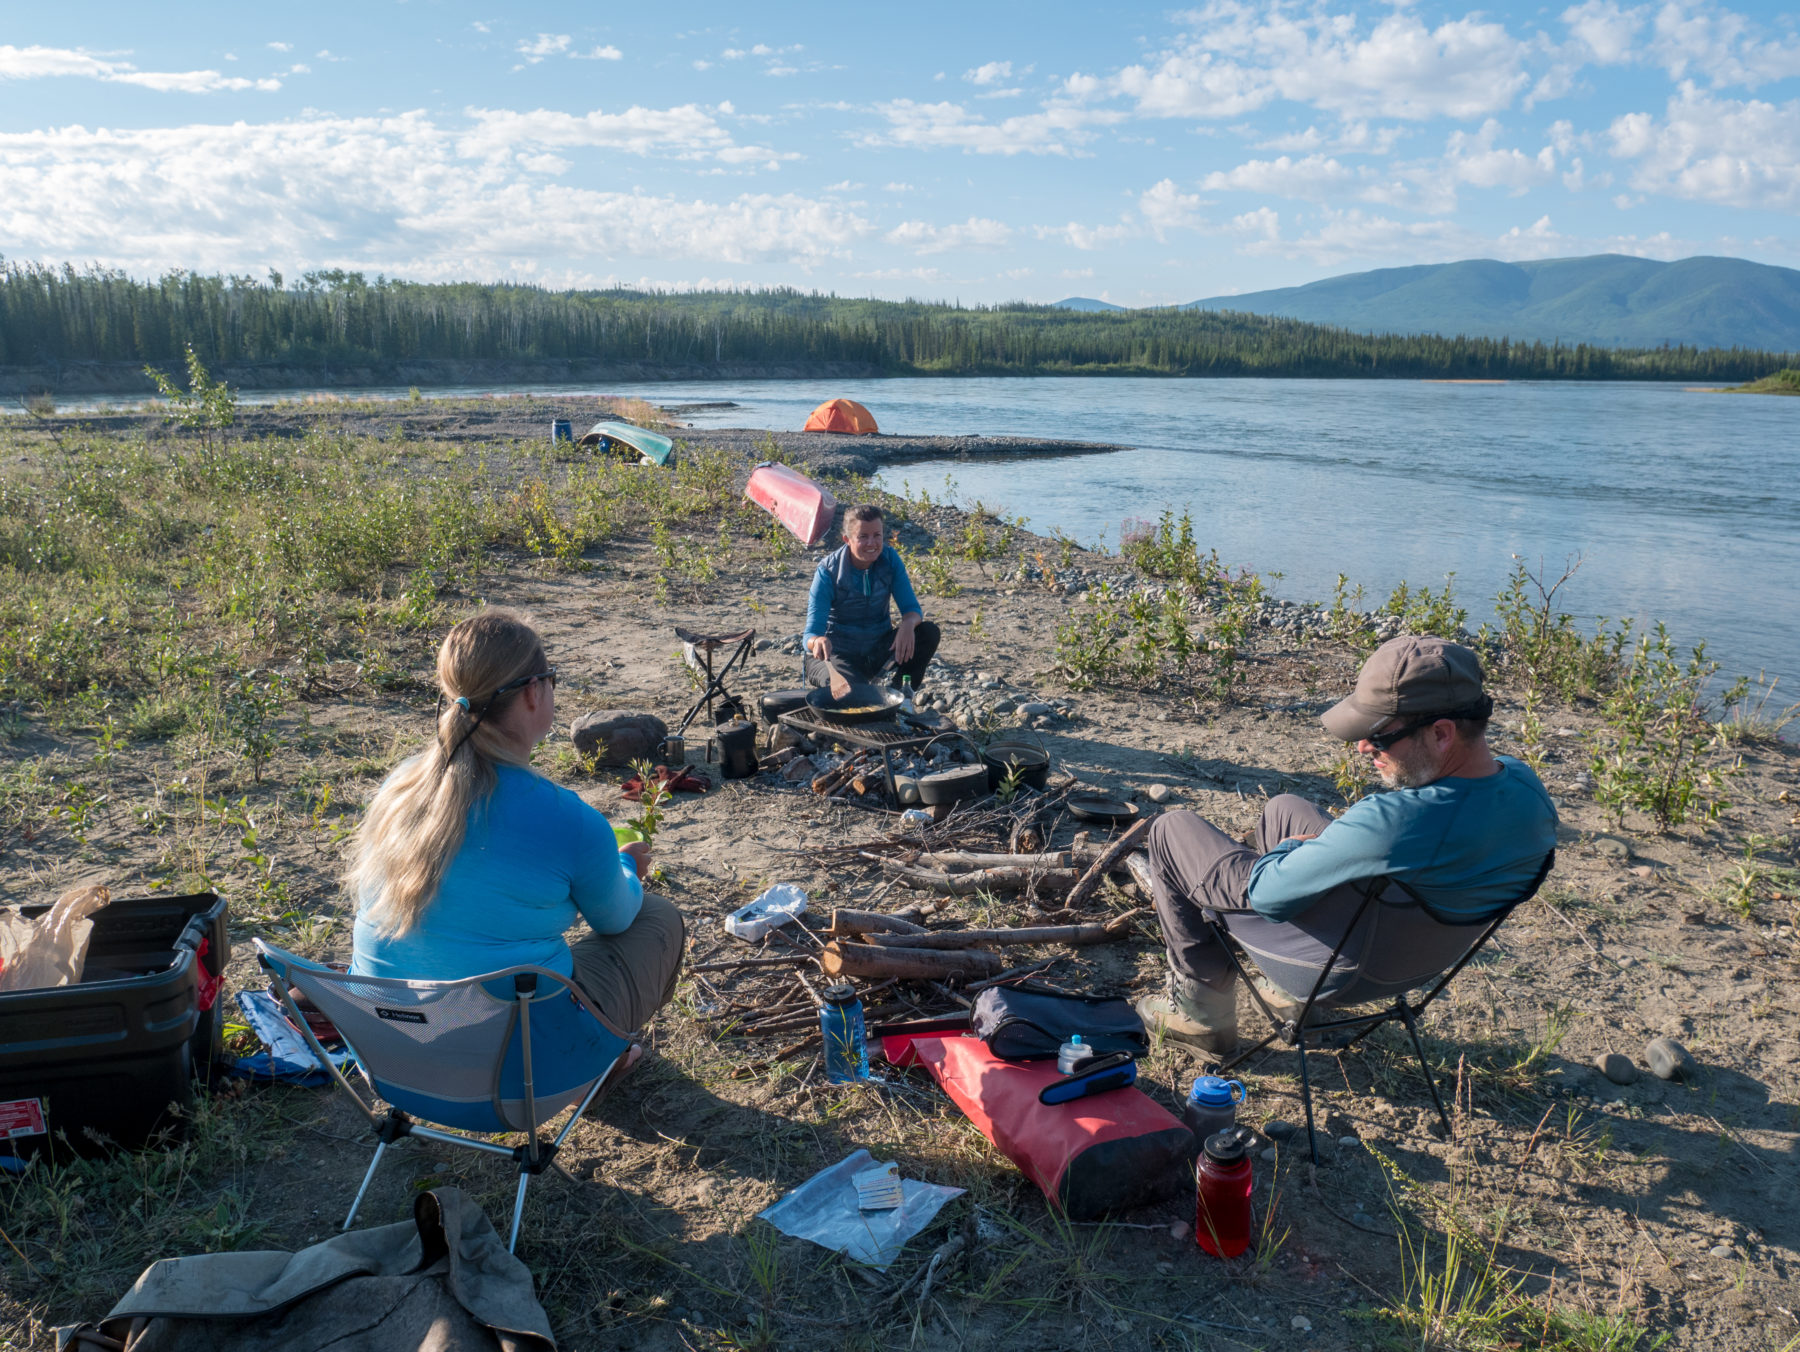 Camping during a canoeing trip